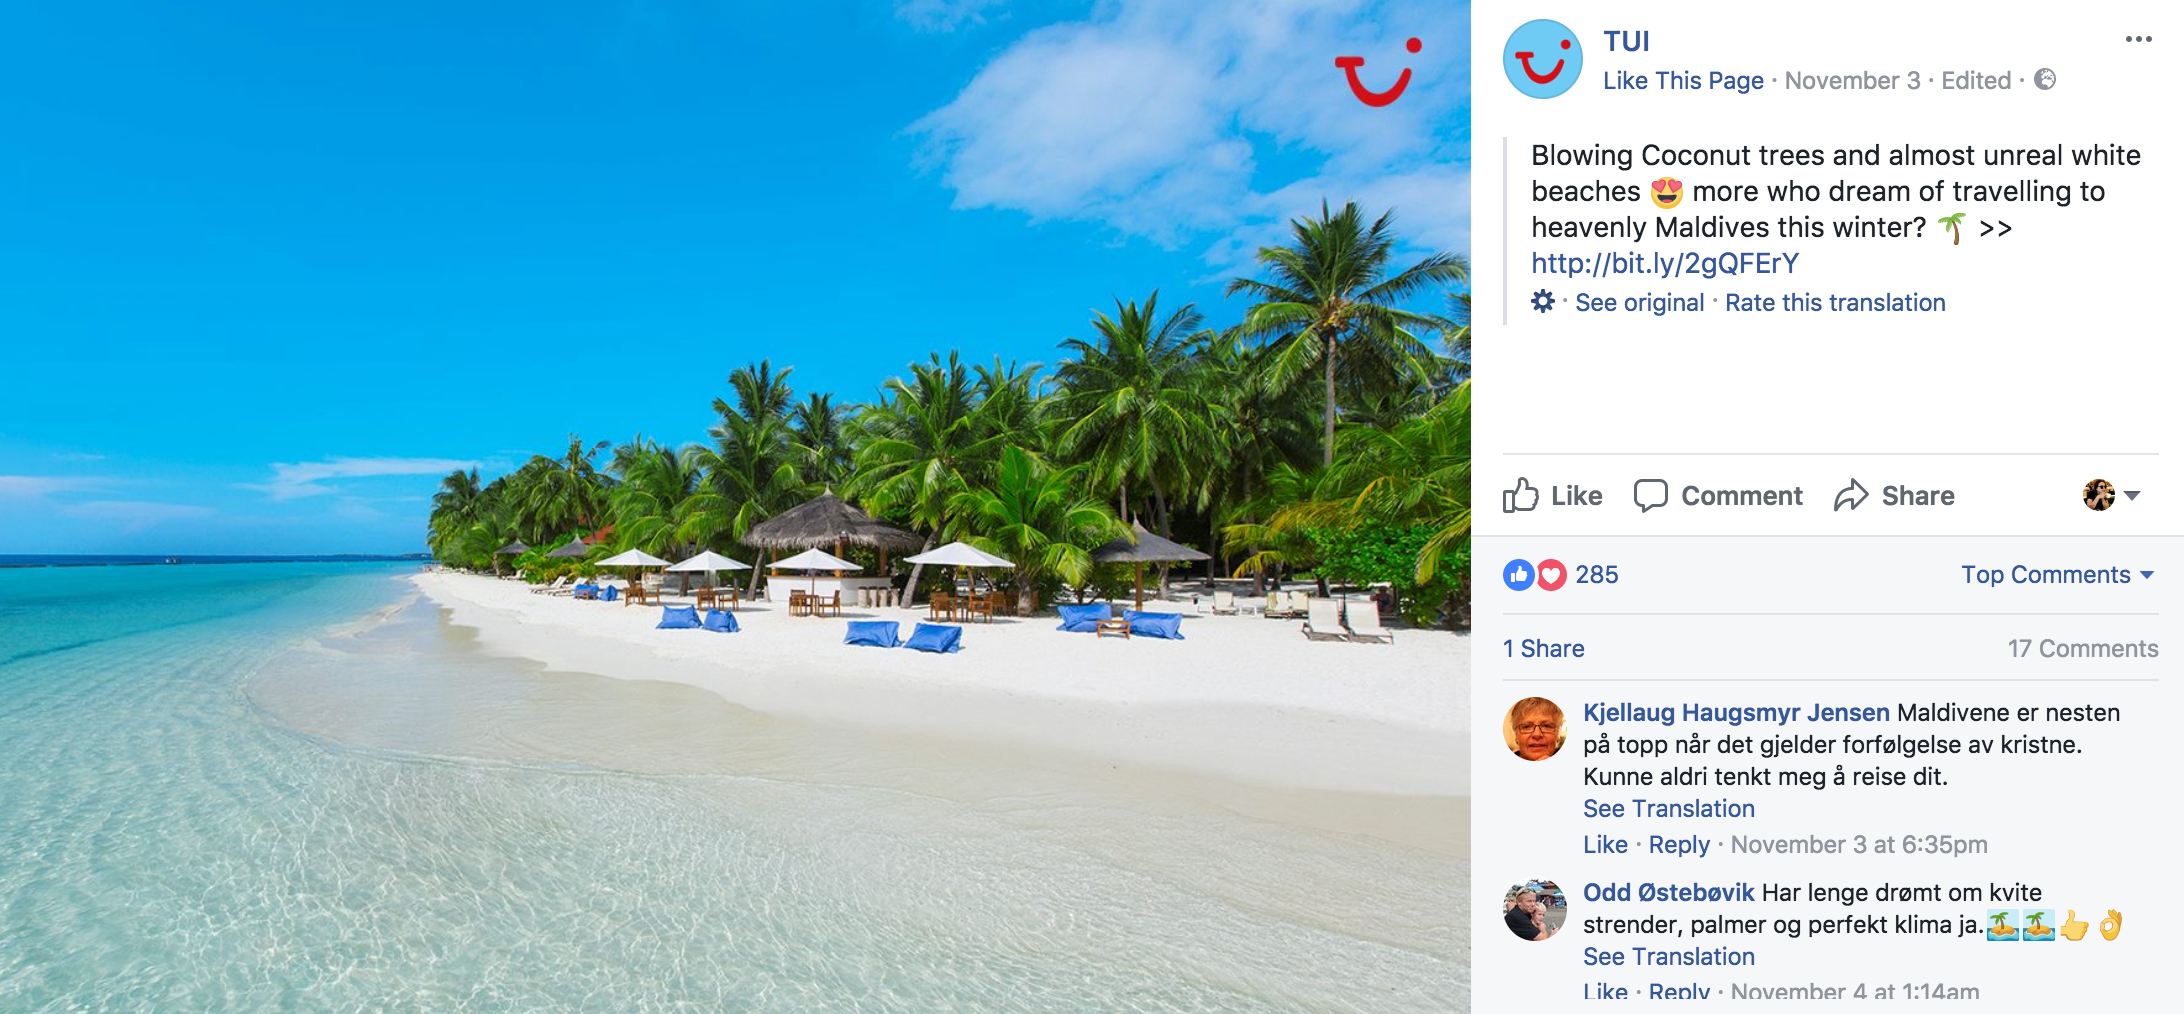 TUI travel agent social media marketing